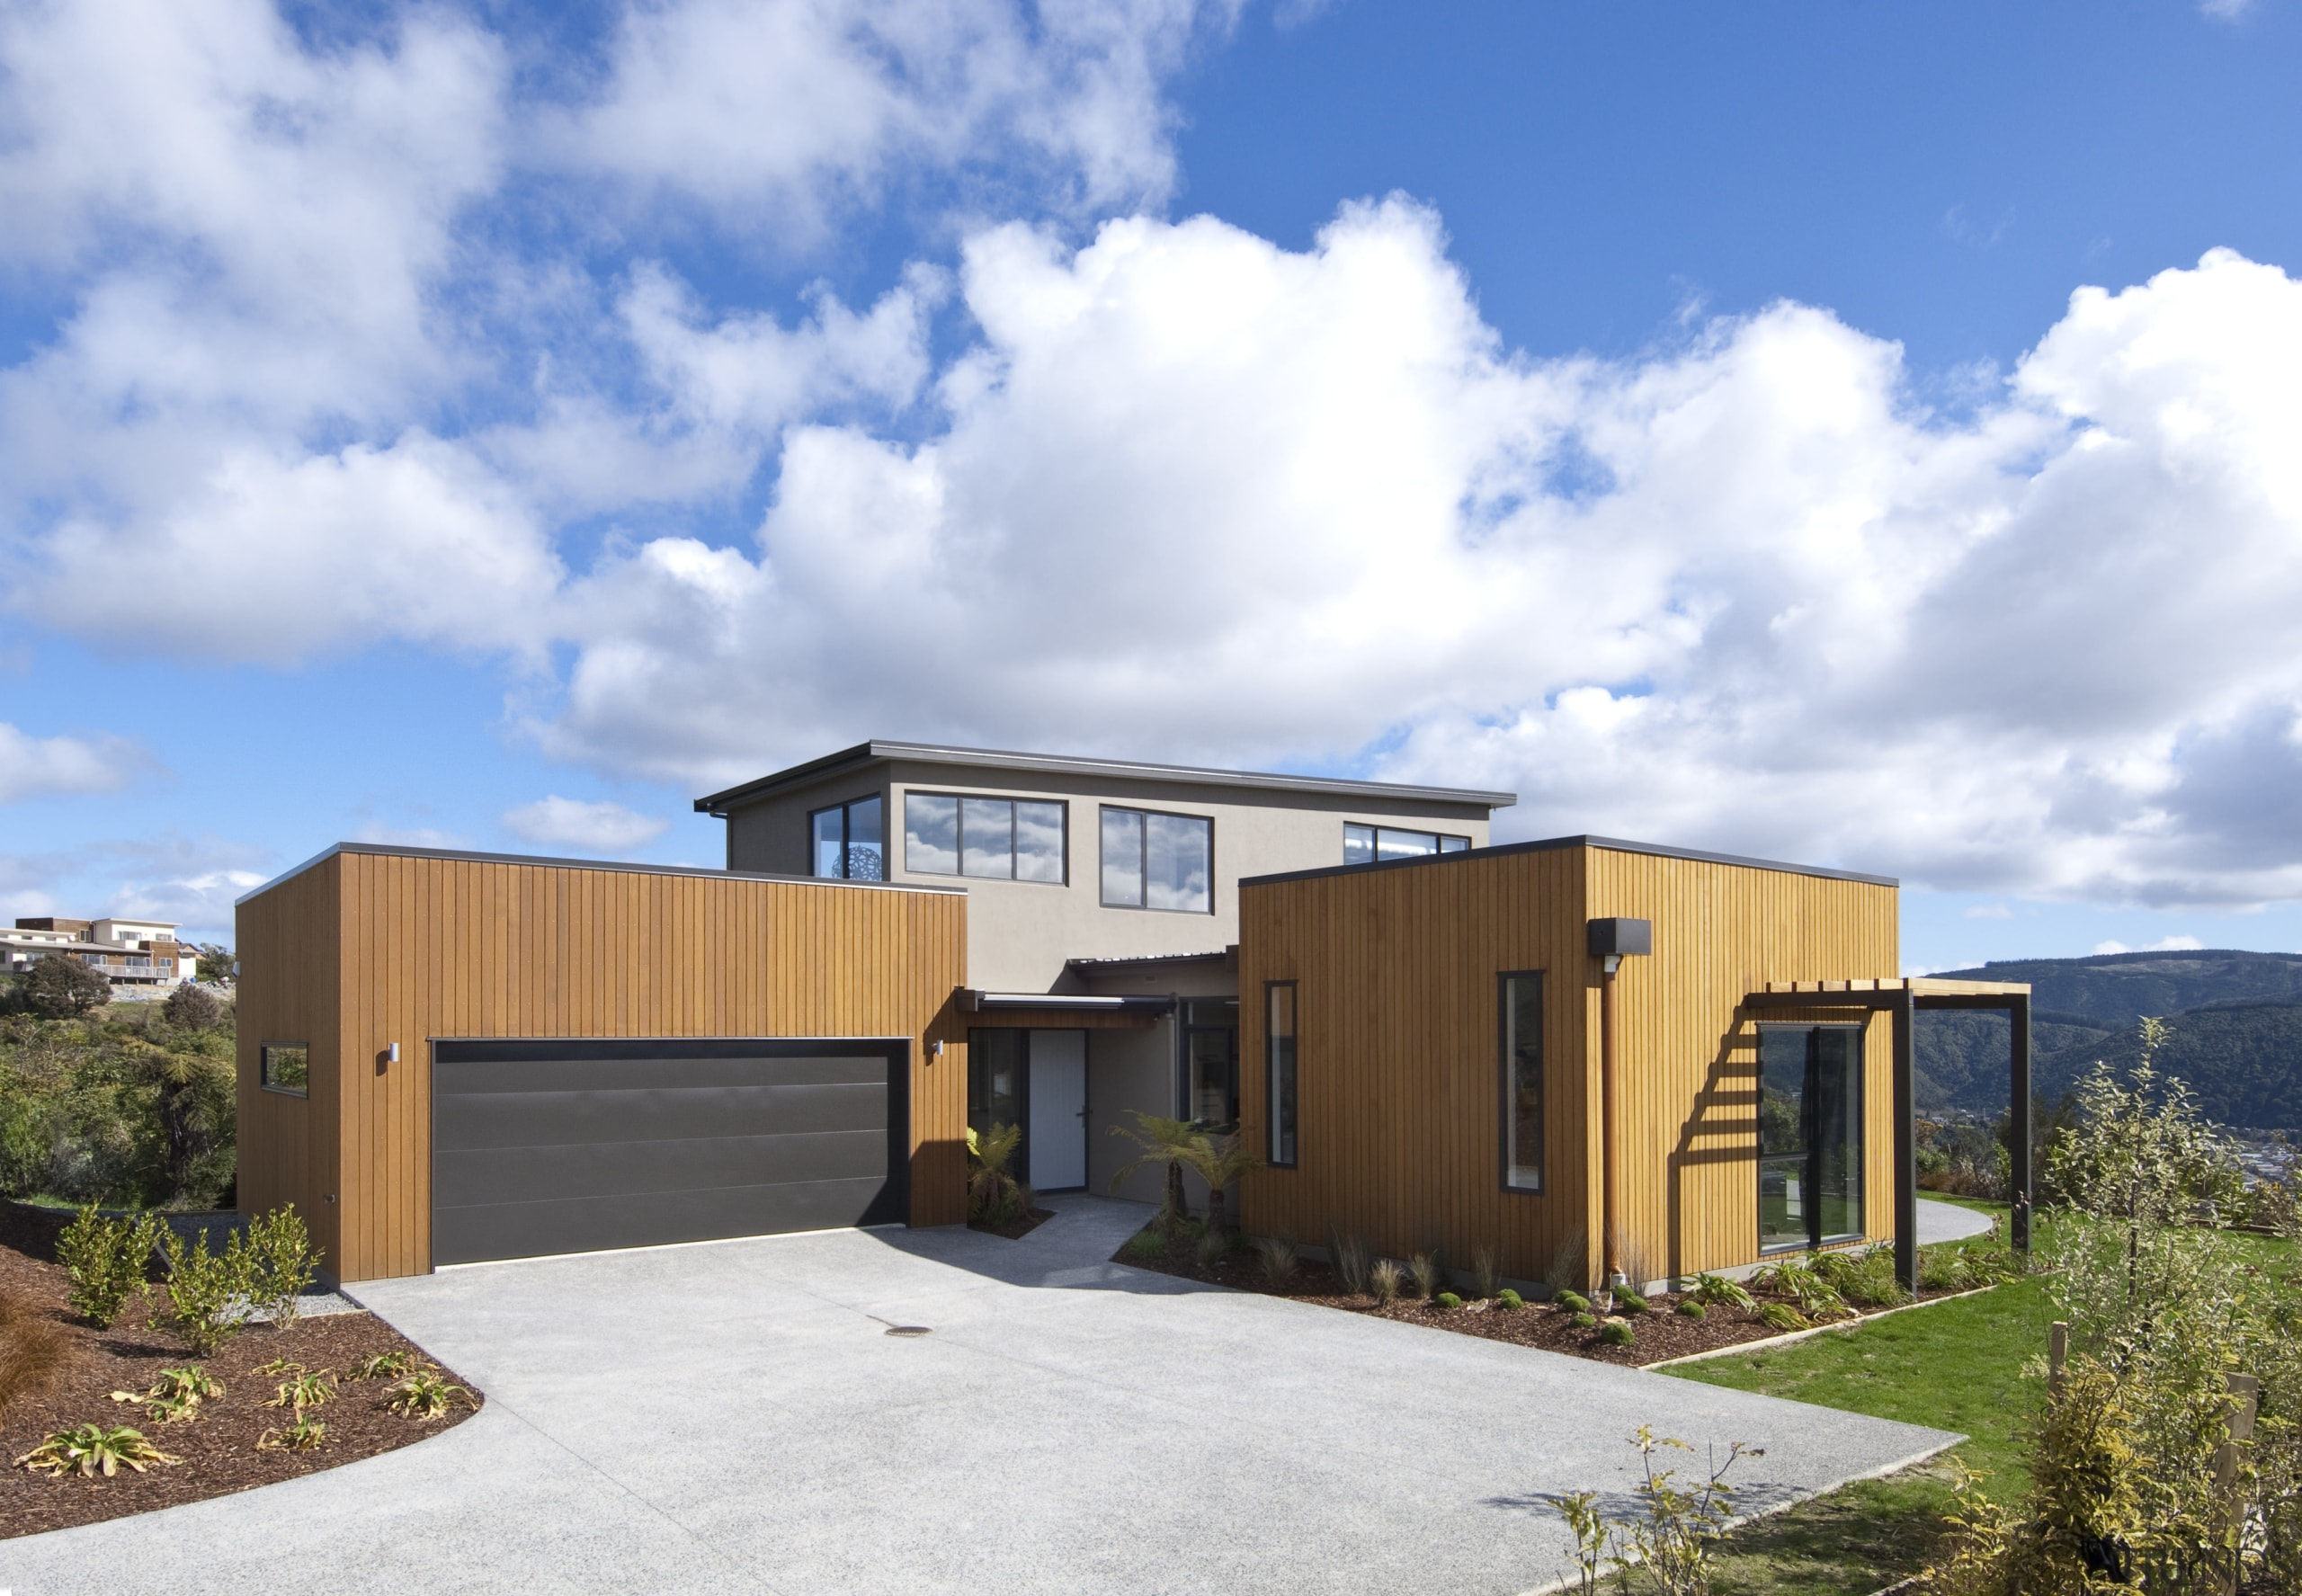 This Upper Hutt Show home was designed and architecture, elevation, facade, home, house, property, real estate, shed, sky, white